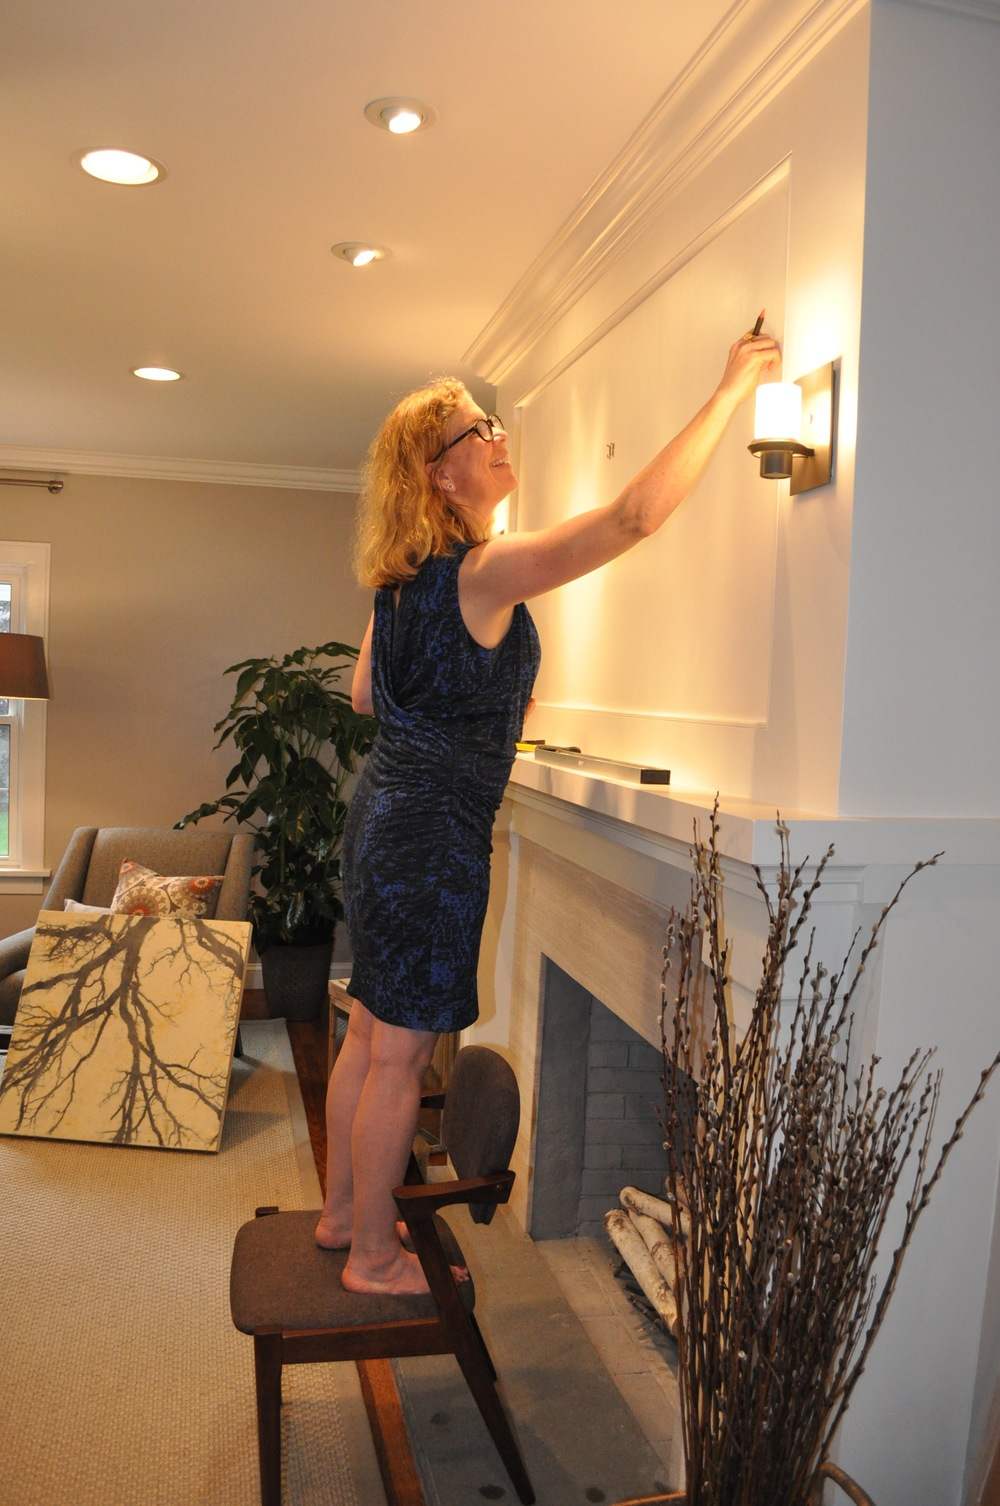 Kenise Barnes of Kenise Barnes Fine Art hangs artwork from her gallery.